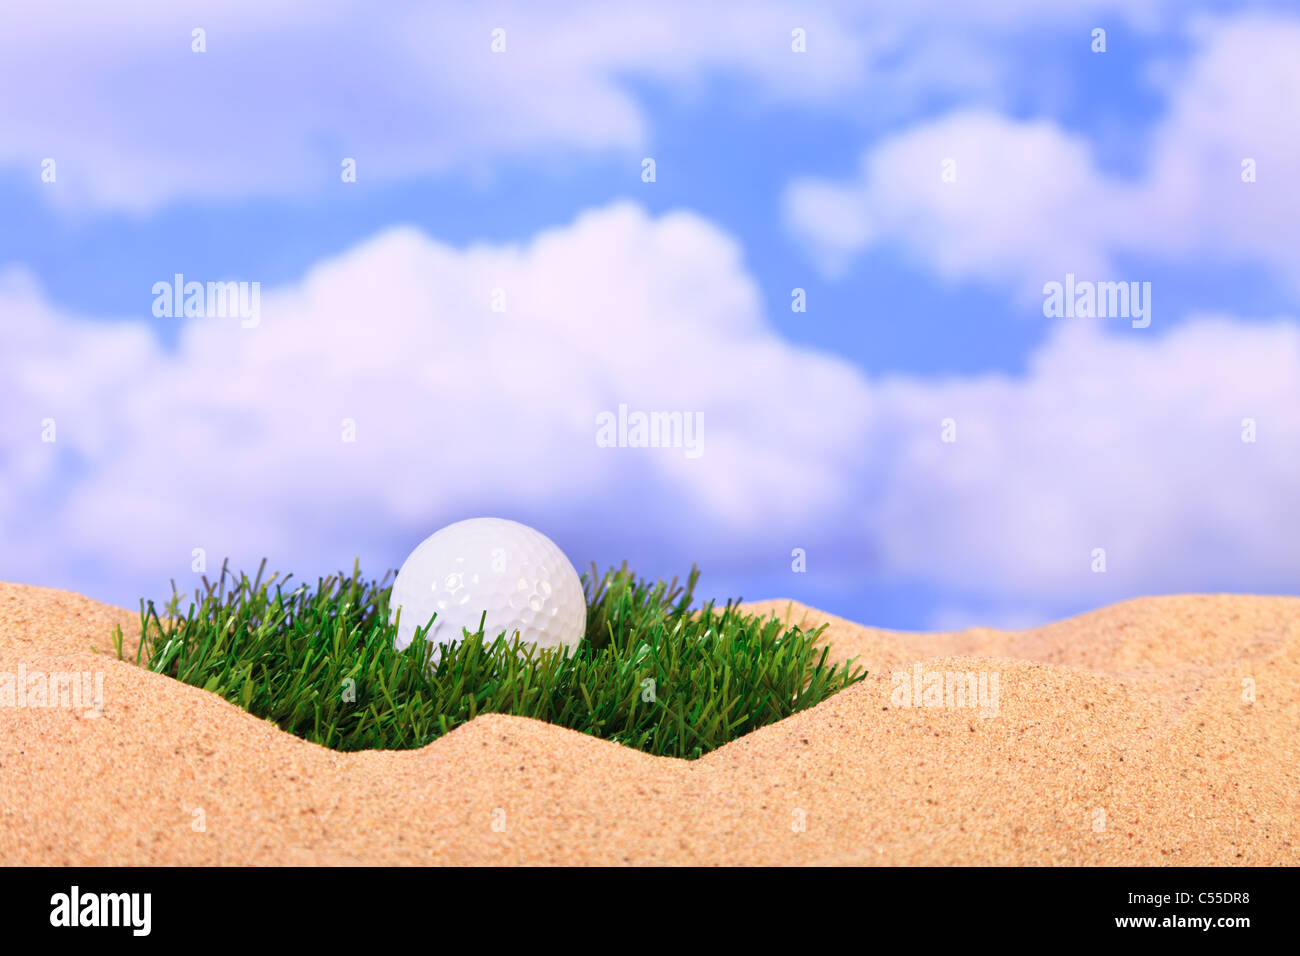 Golf concept photo of a ball lying on a patch of grass in a bunker. - Stock Image